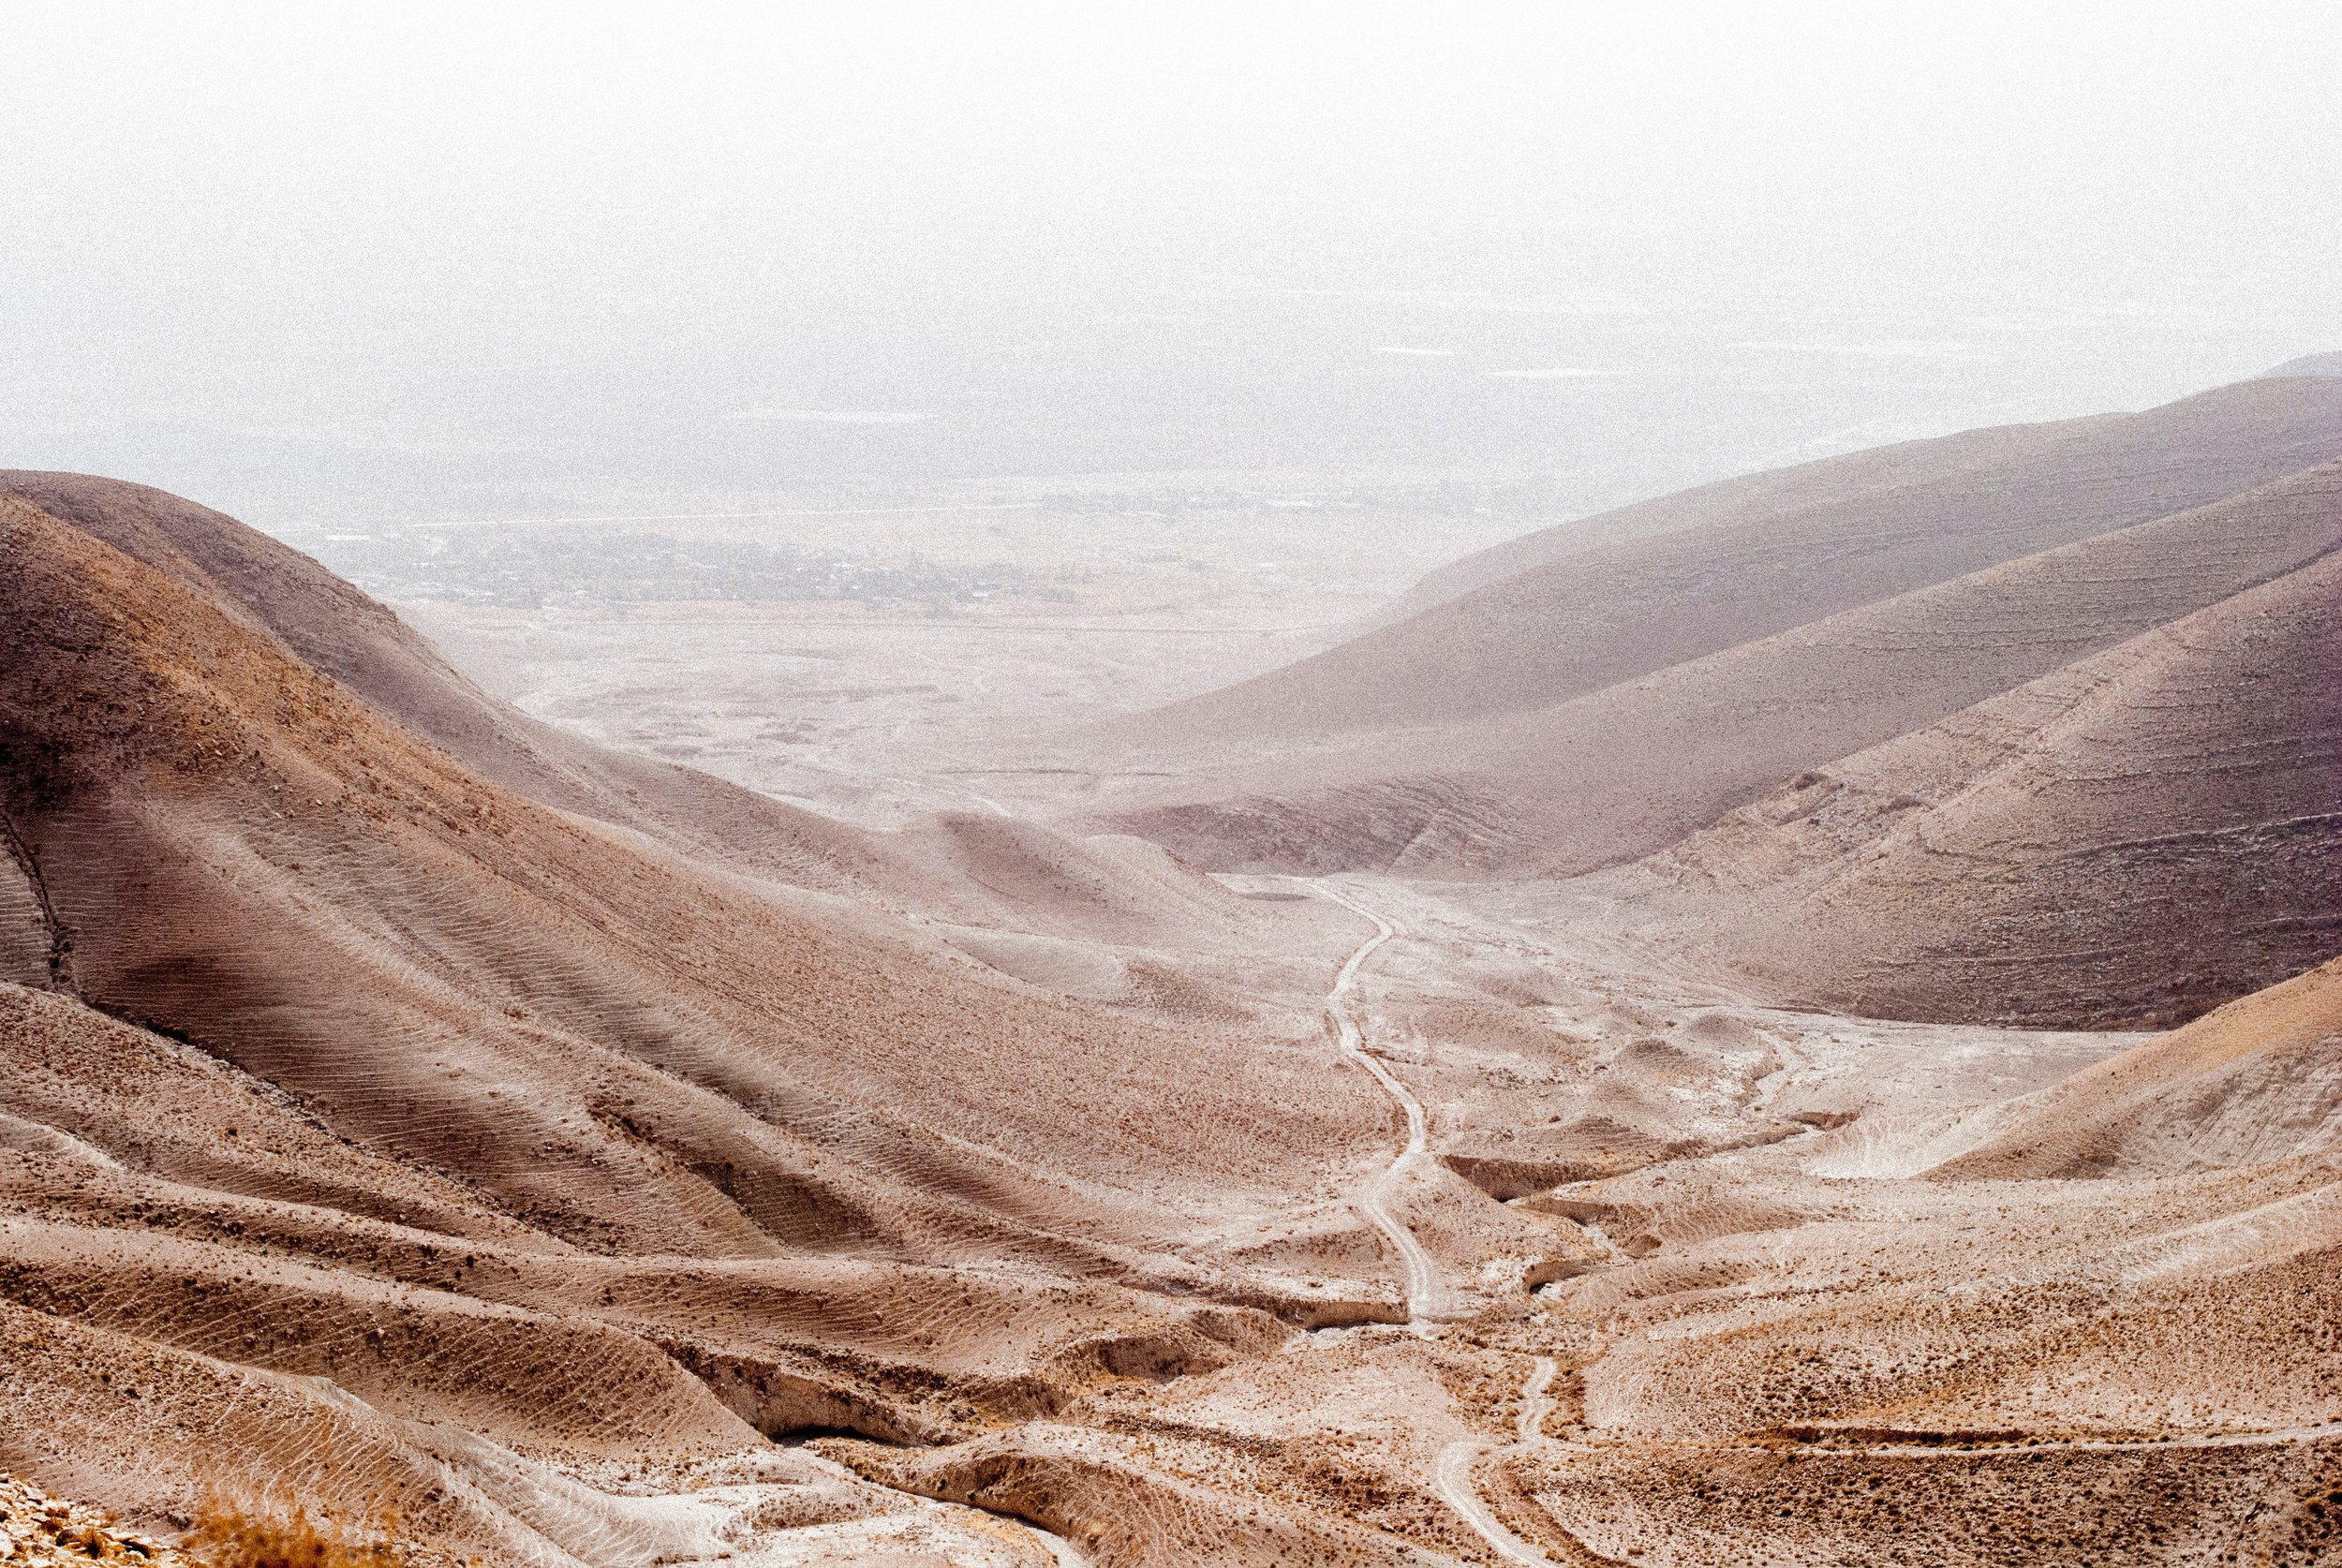 Negev Desert, Israel - March 21 - 27th, 2020